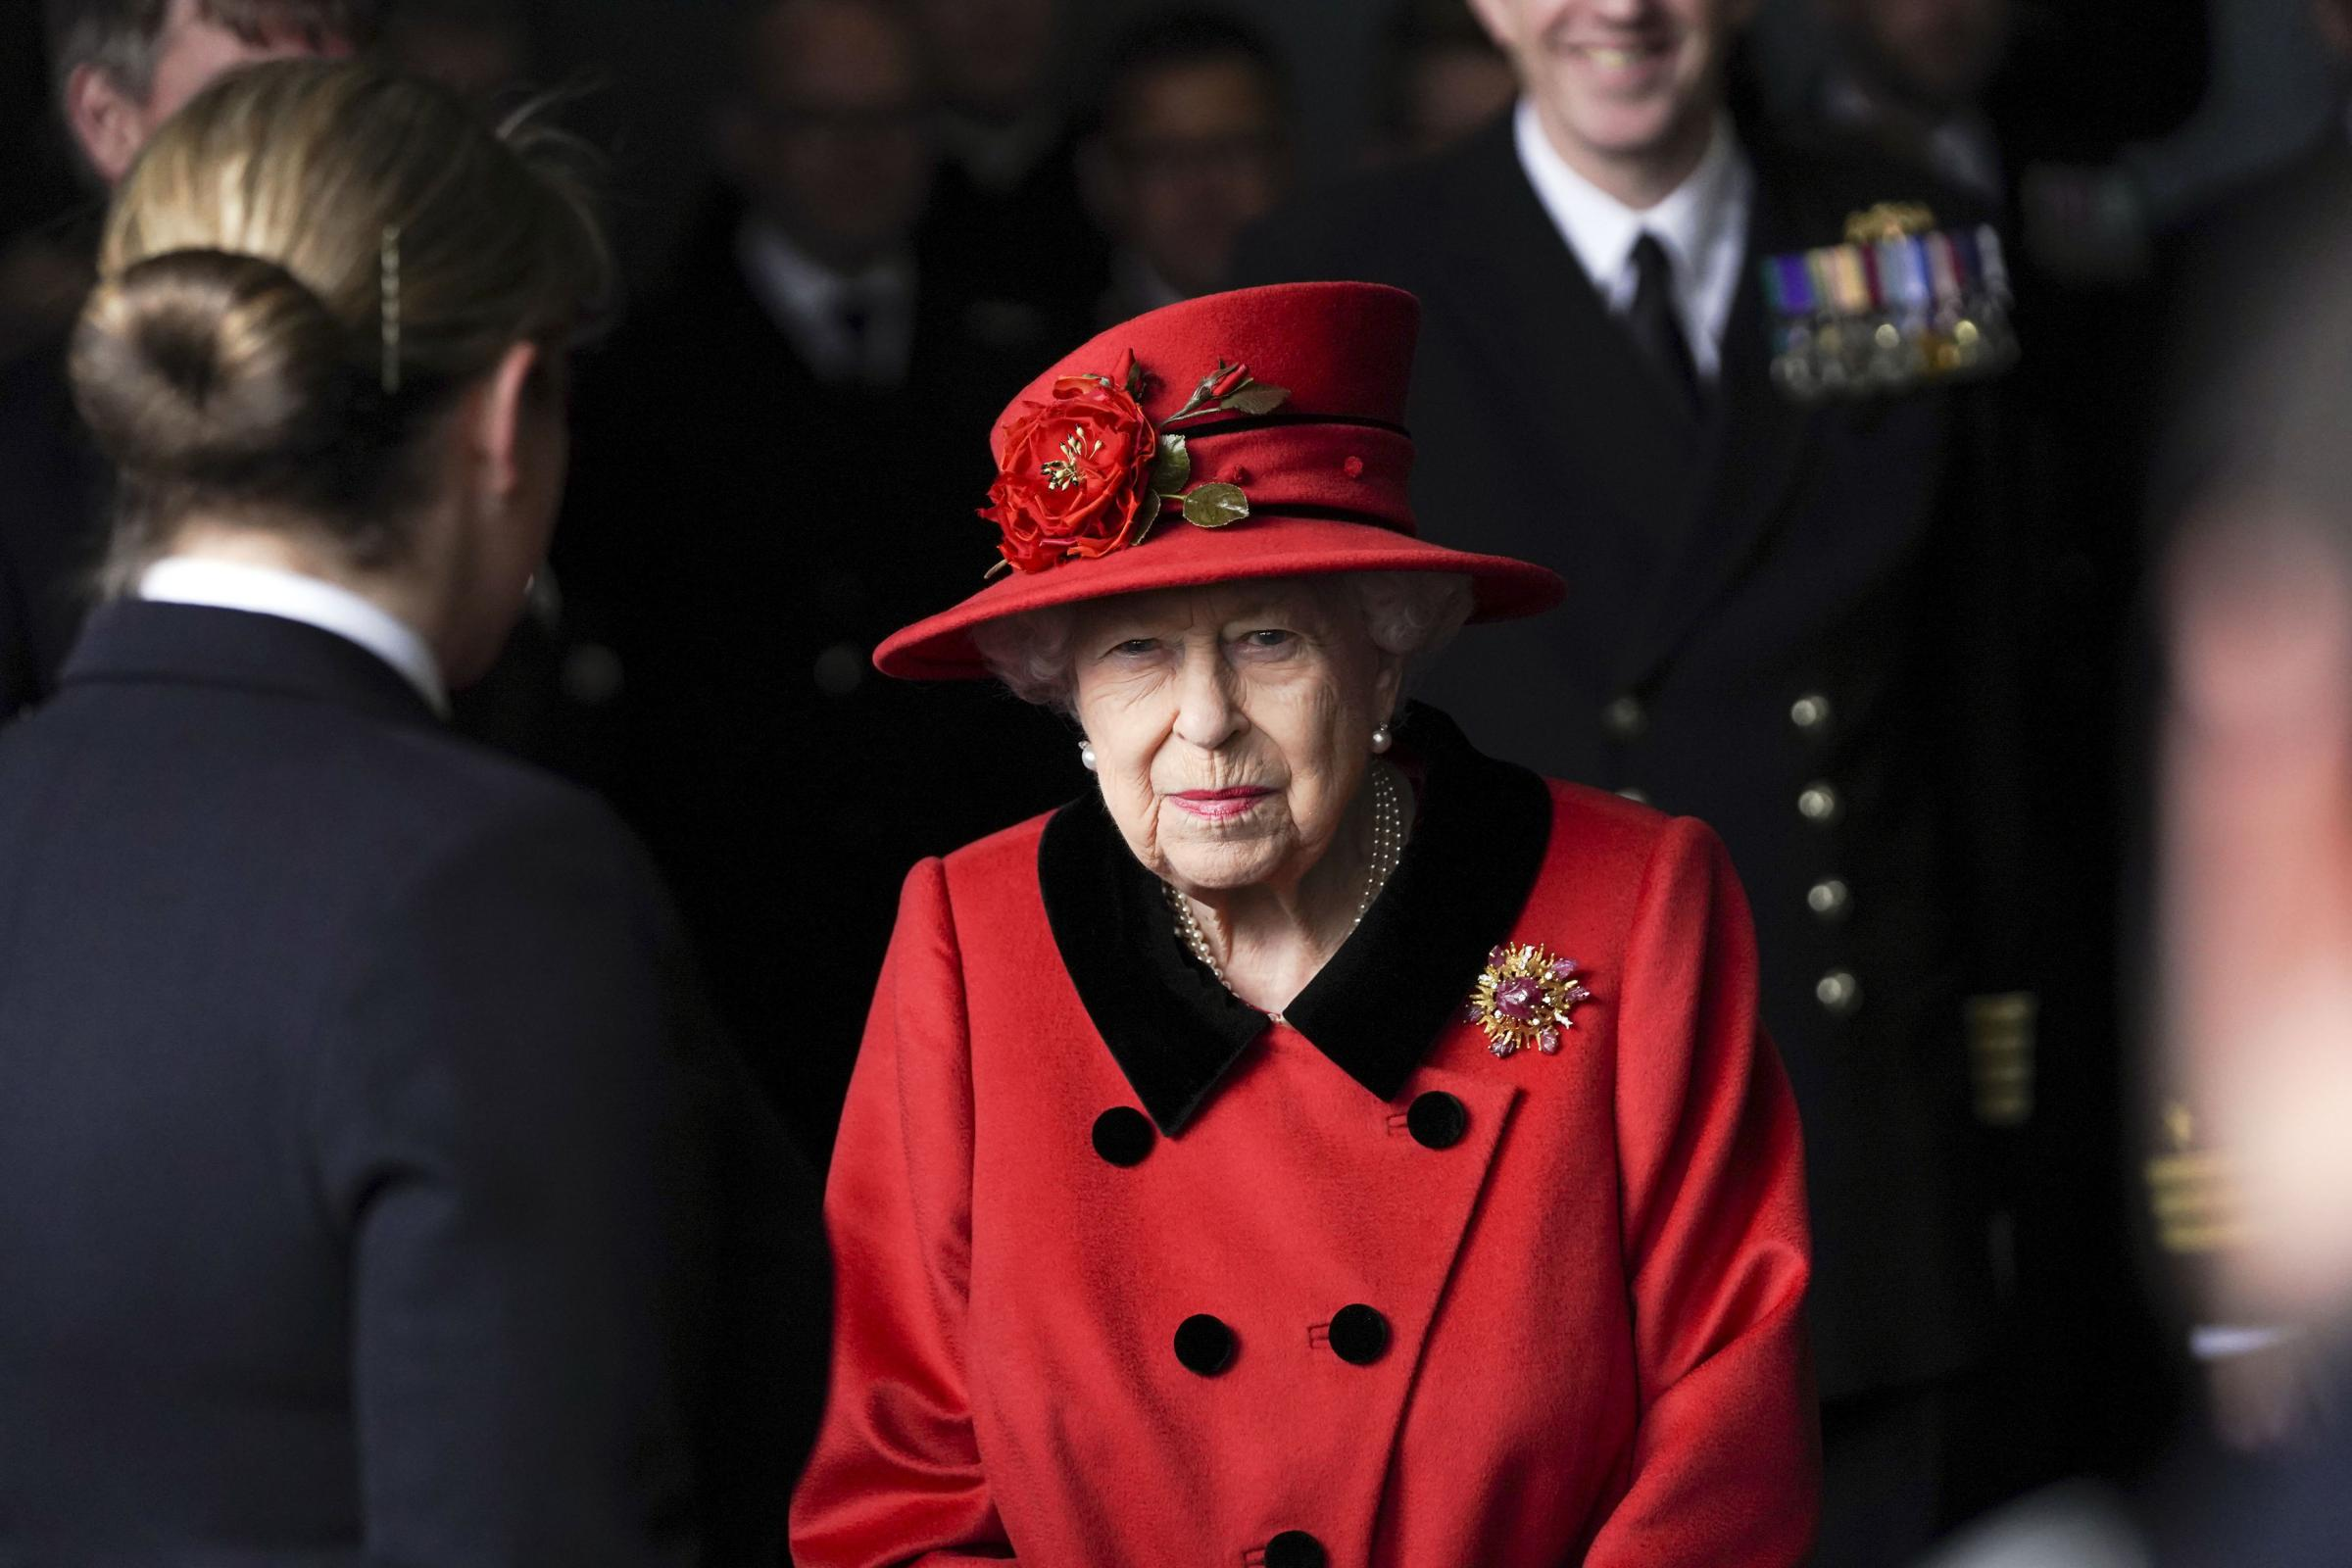 The Queen to head royal 'charm offensive' to stop Scottish independence